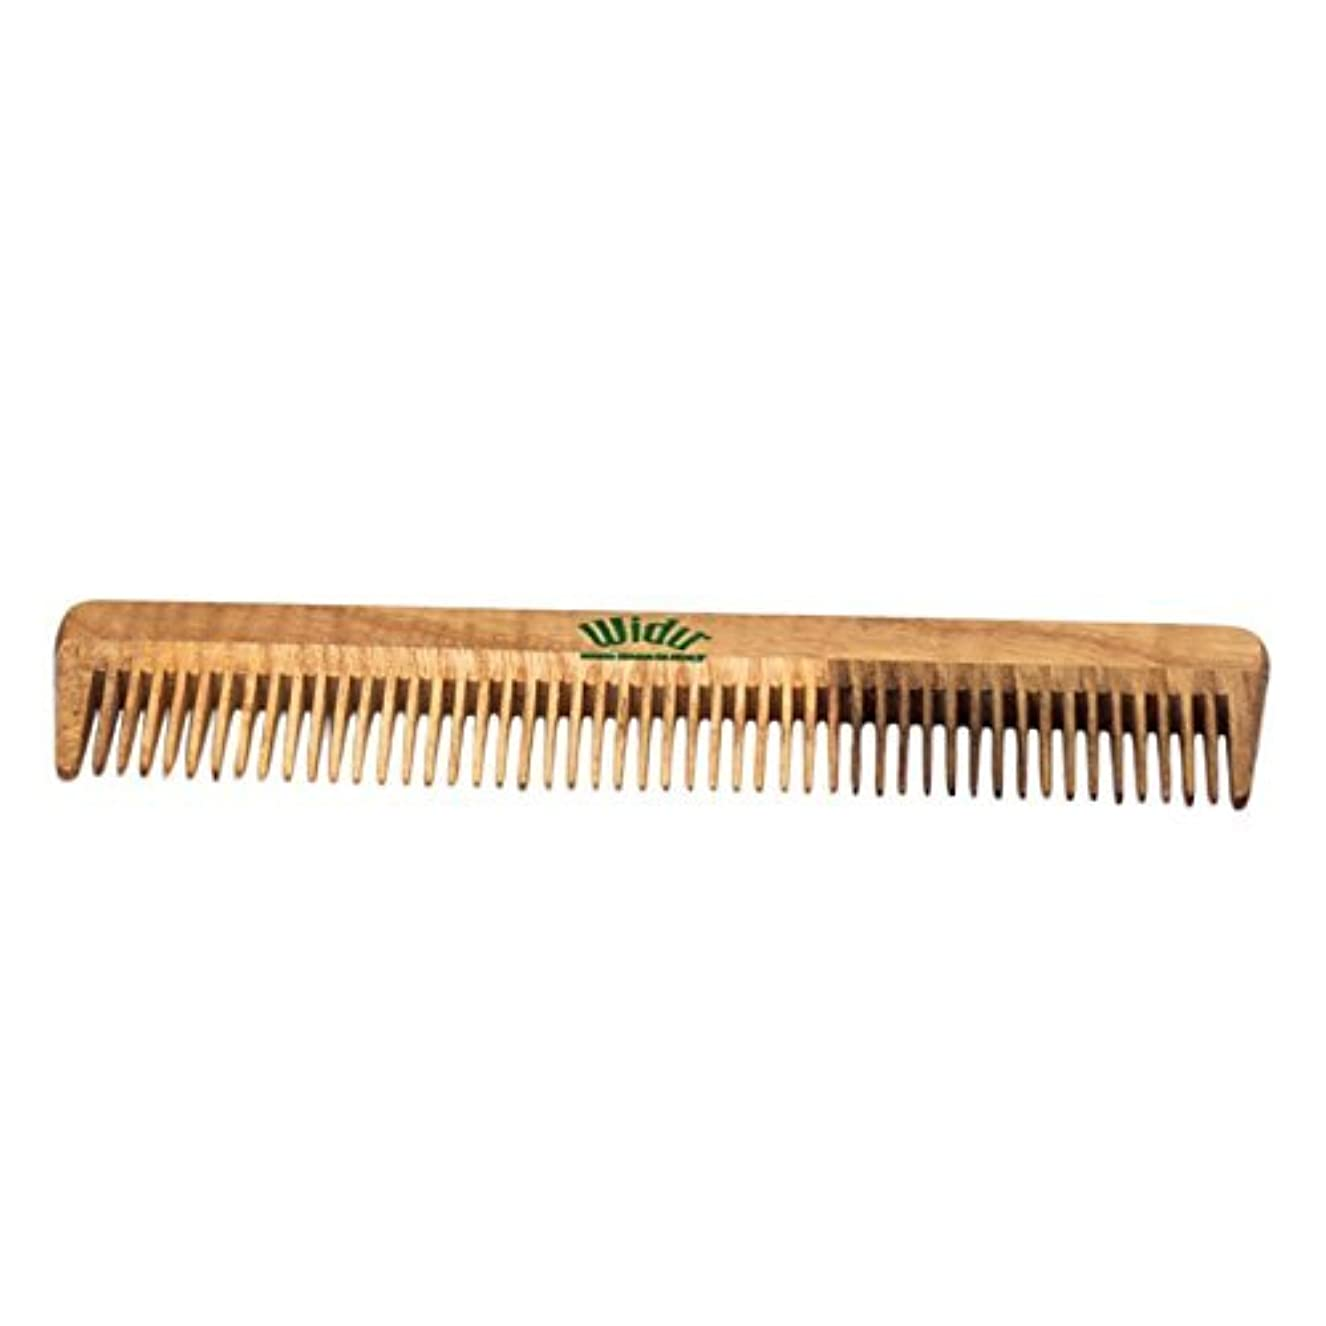 毒悪用契約したSmall Comb with Thin Spaced Teeth 1 Count [並行輸入品]